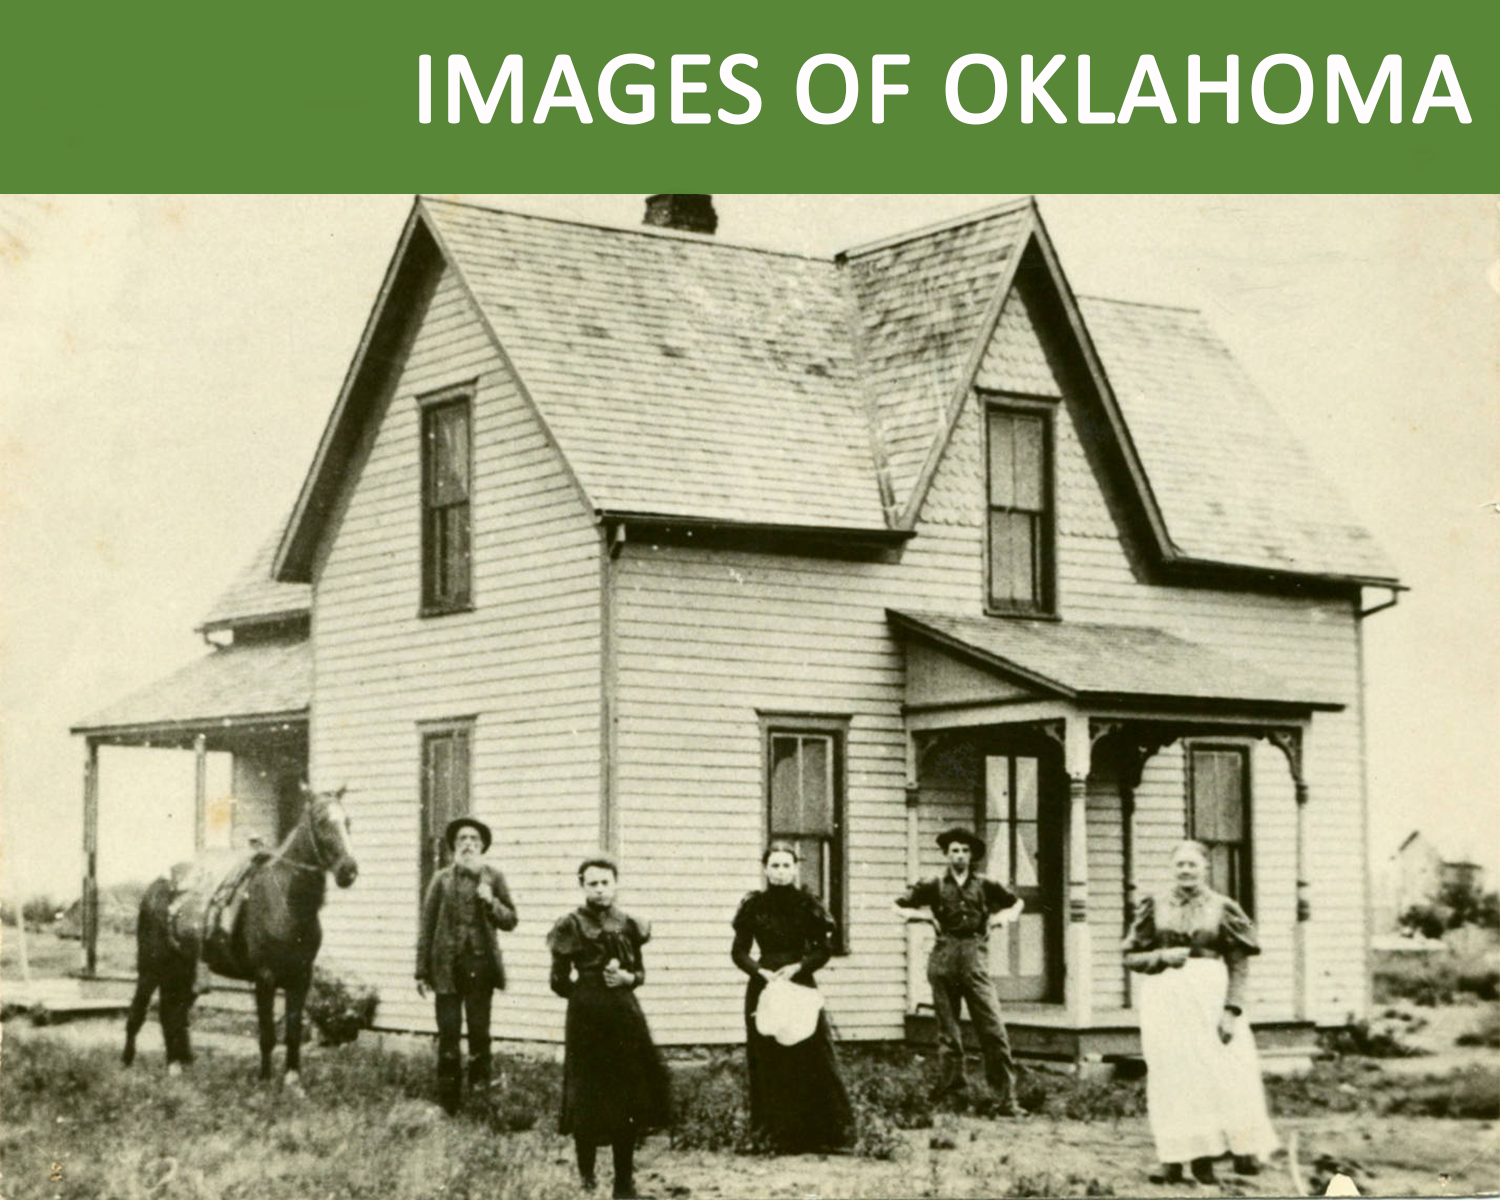 Collection of Oklahoma Images